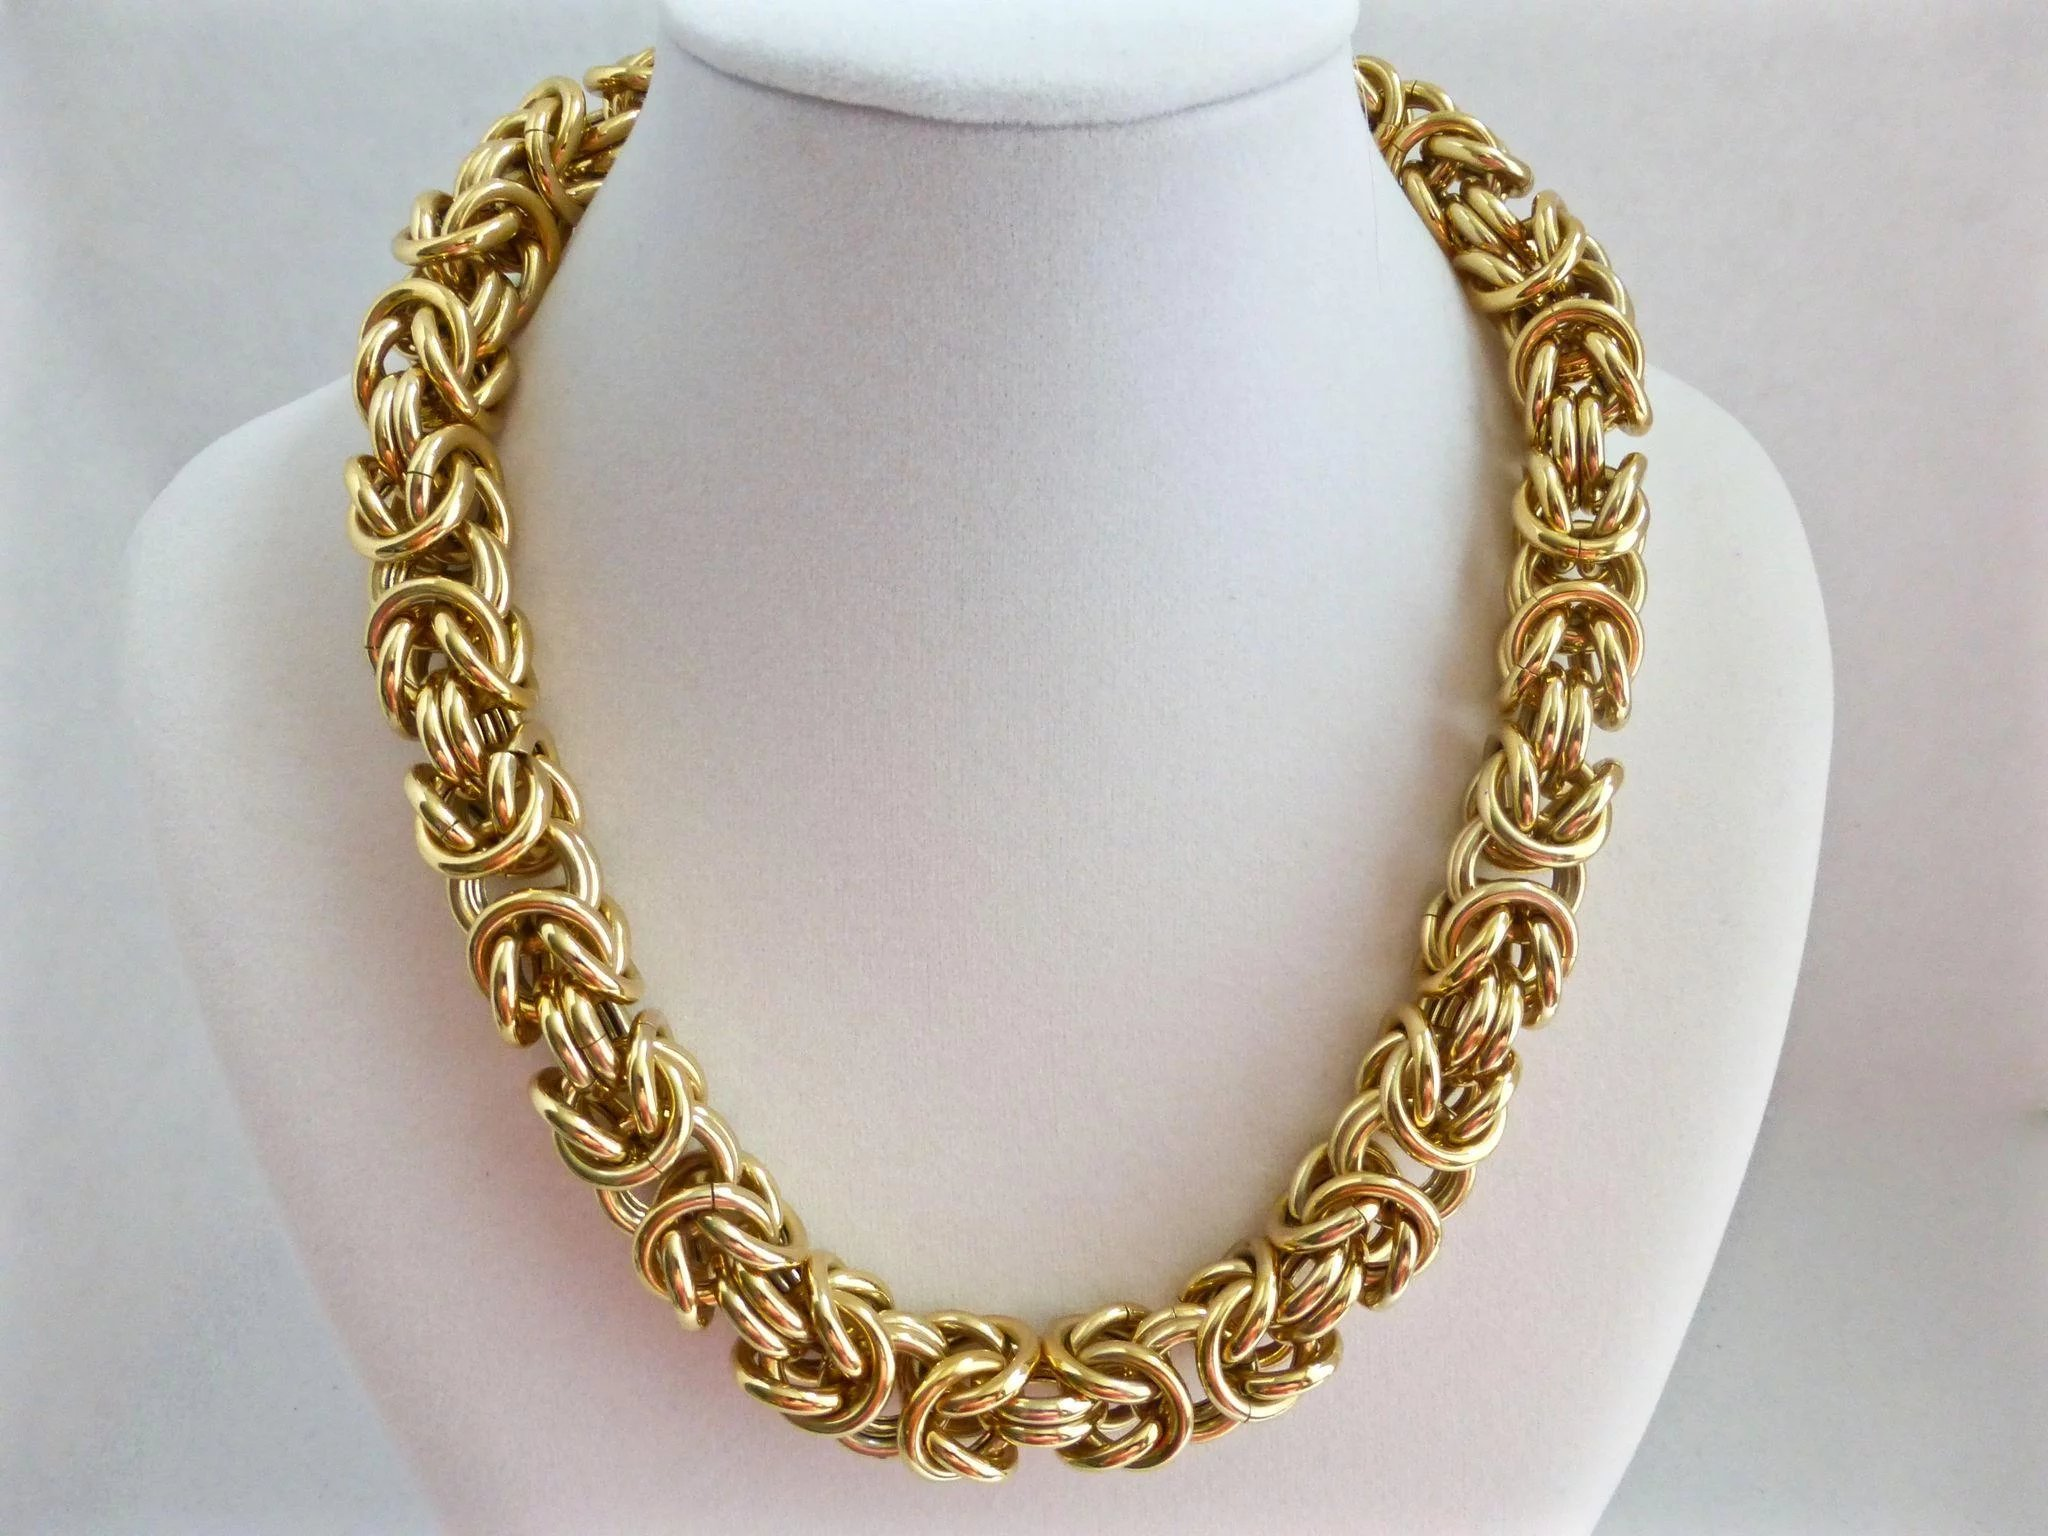 chain necklace youtube watch gold qvc on dimensional byzantine